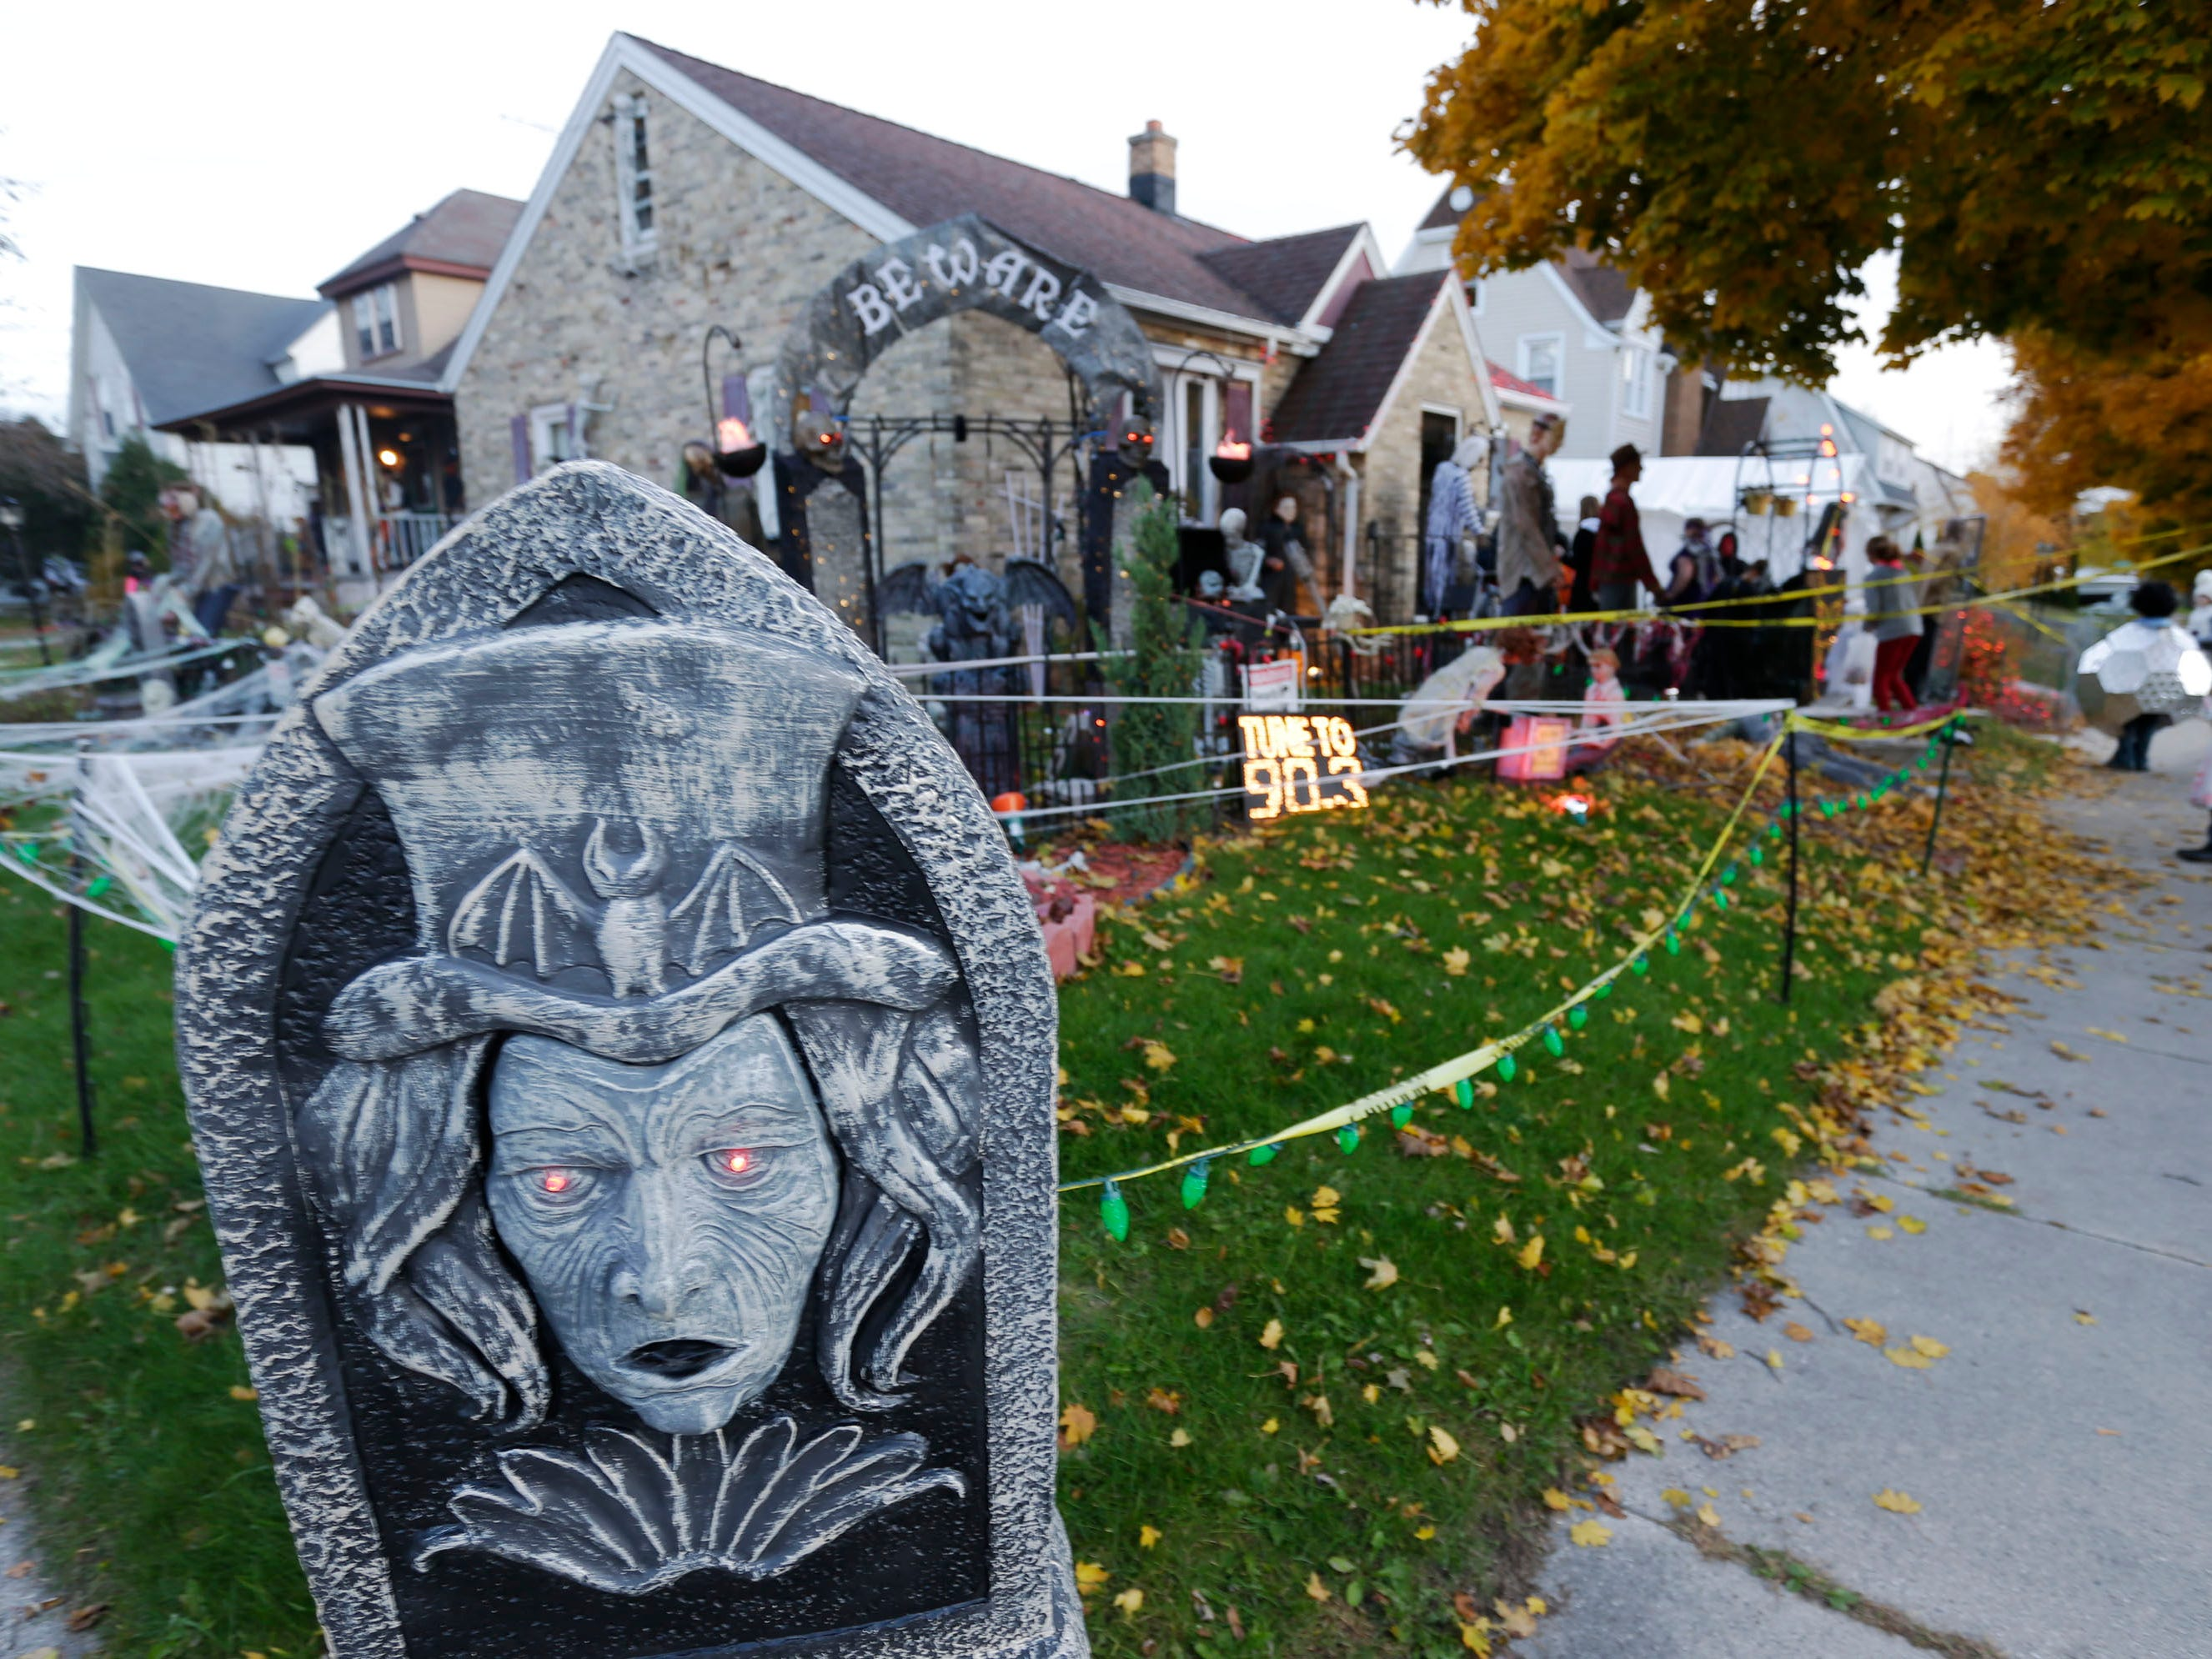 A home decorated at 9th and Humboldt was ready to scare during Trick or Treat, Wednesday, October 31, 2018, in Sheboygan, Wis.